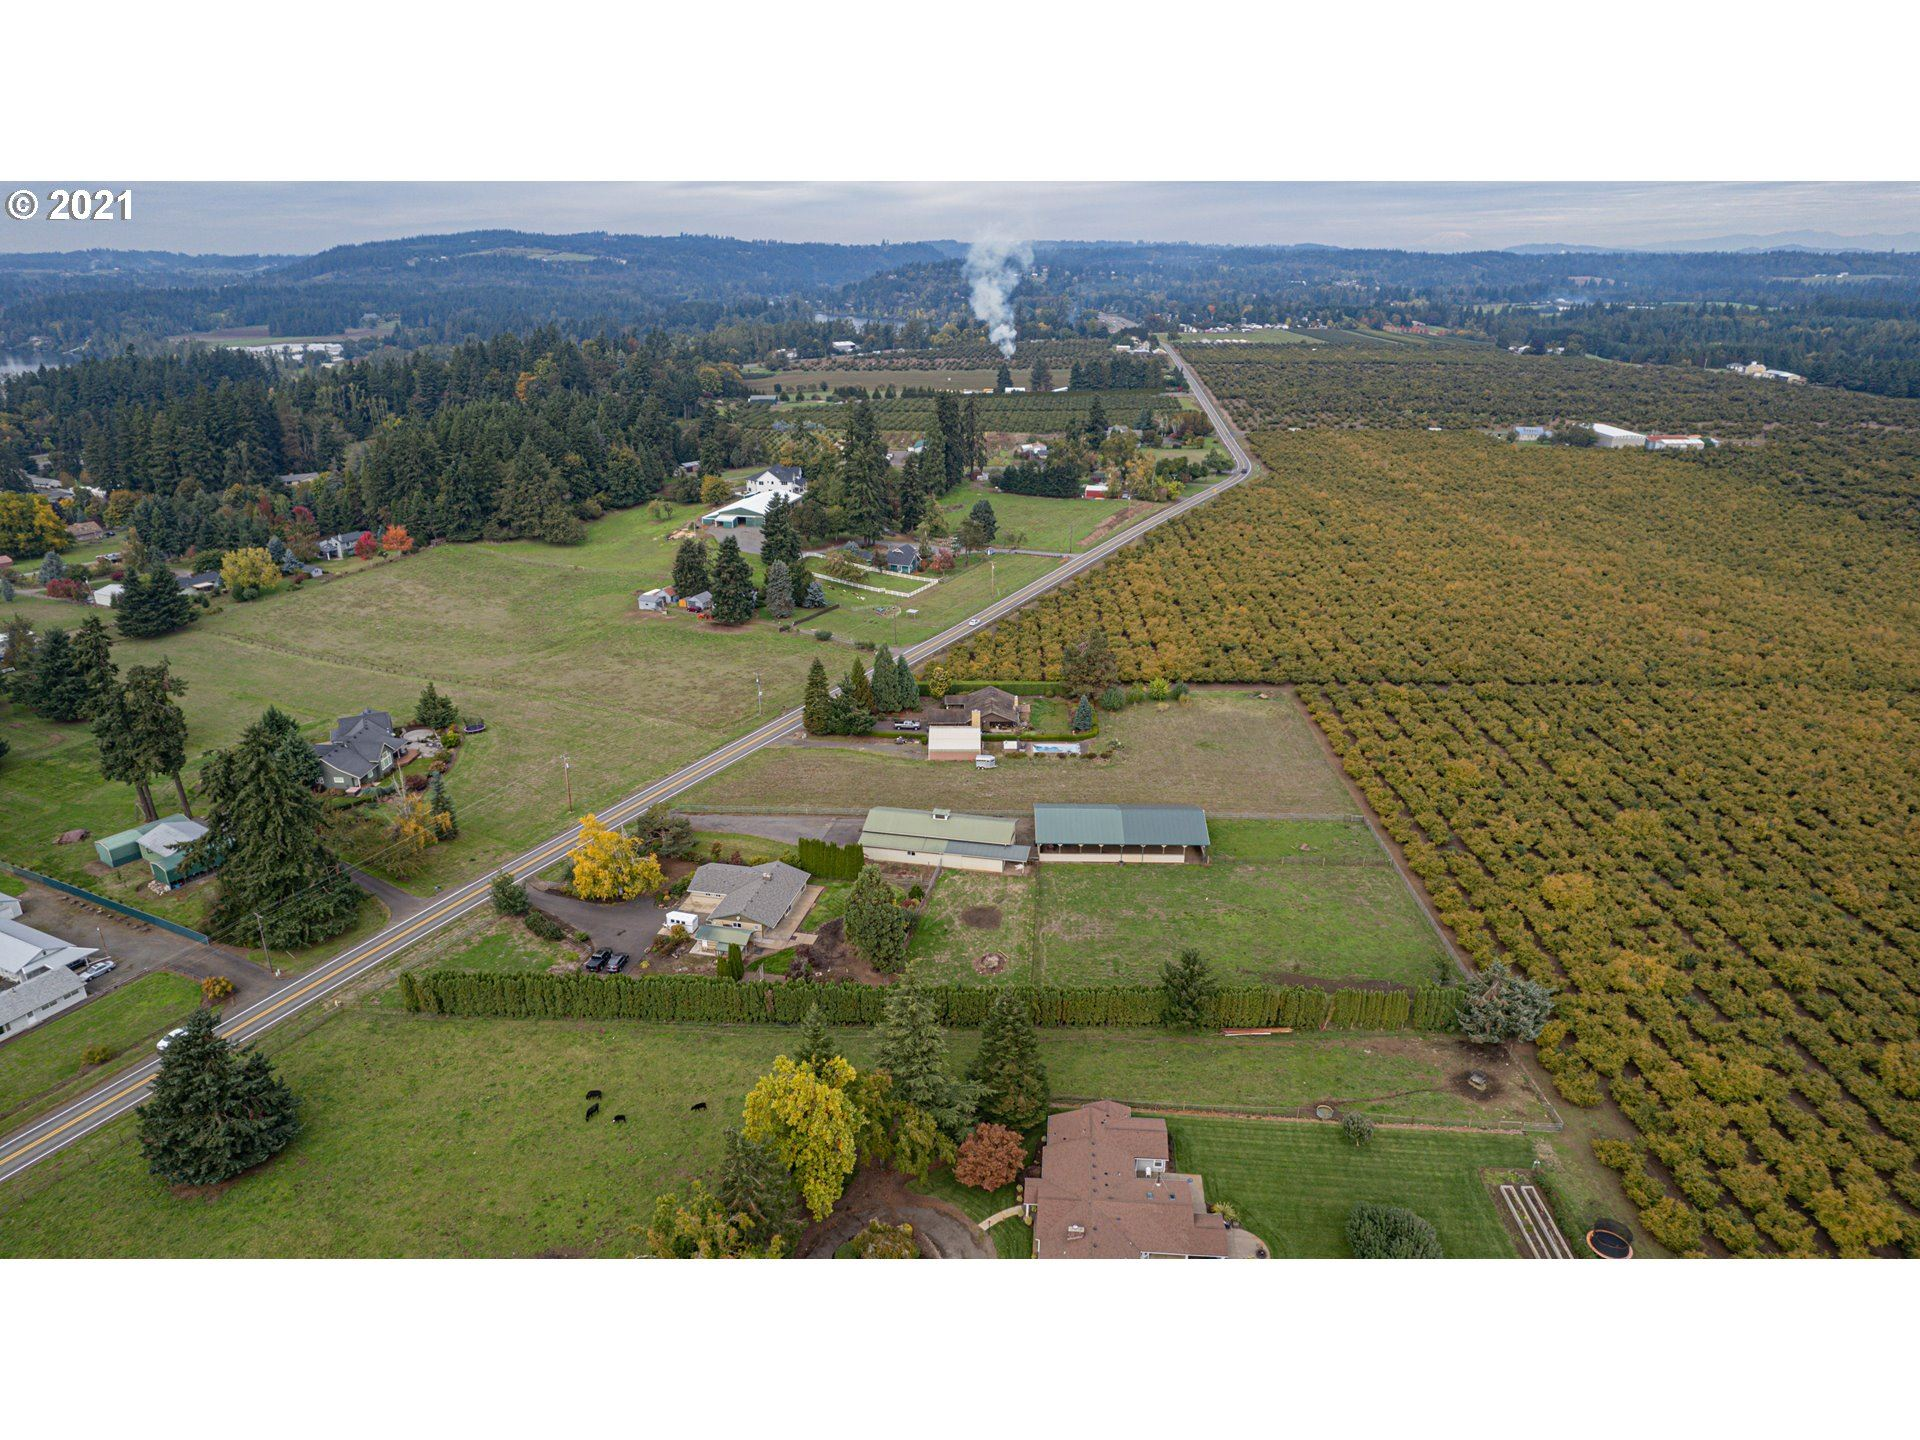 Photo of 22900 S HAINES RD, Canby, OR 97013 (MLS # 21122343)